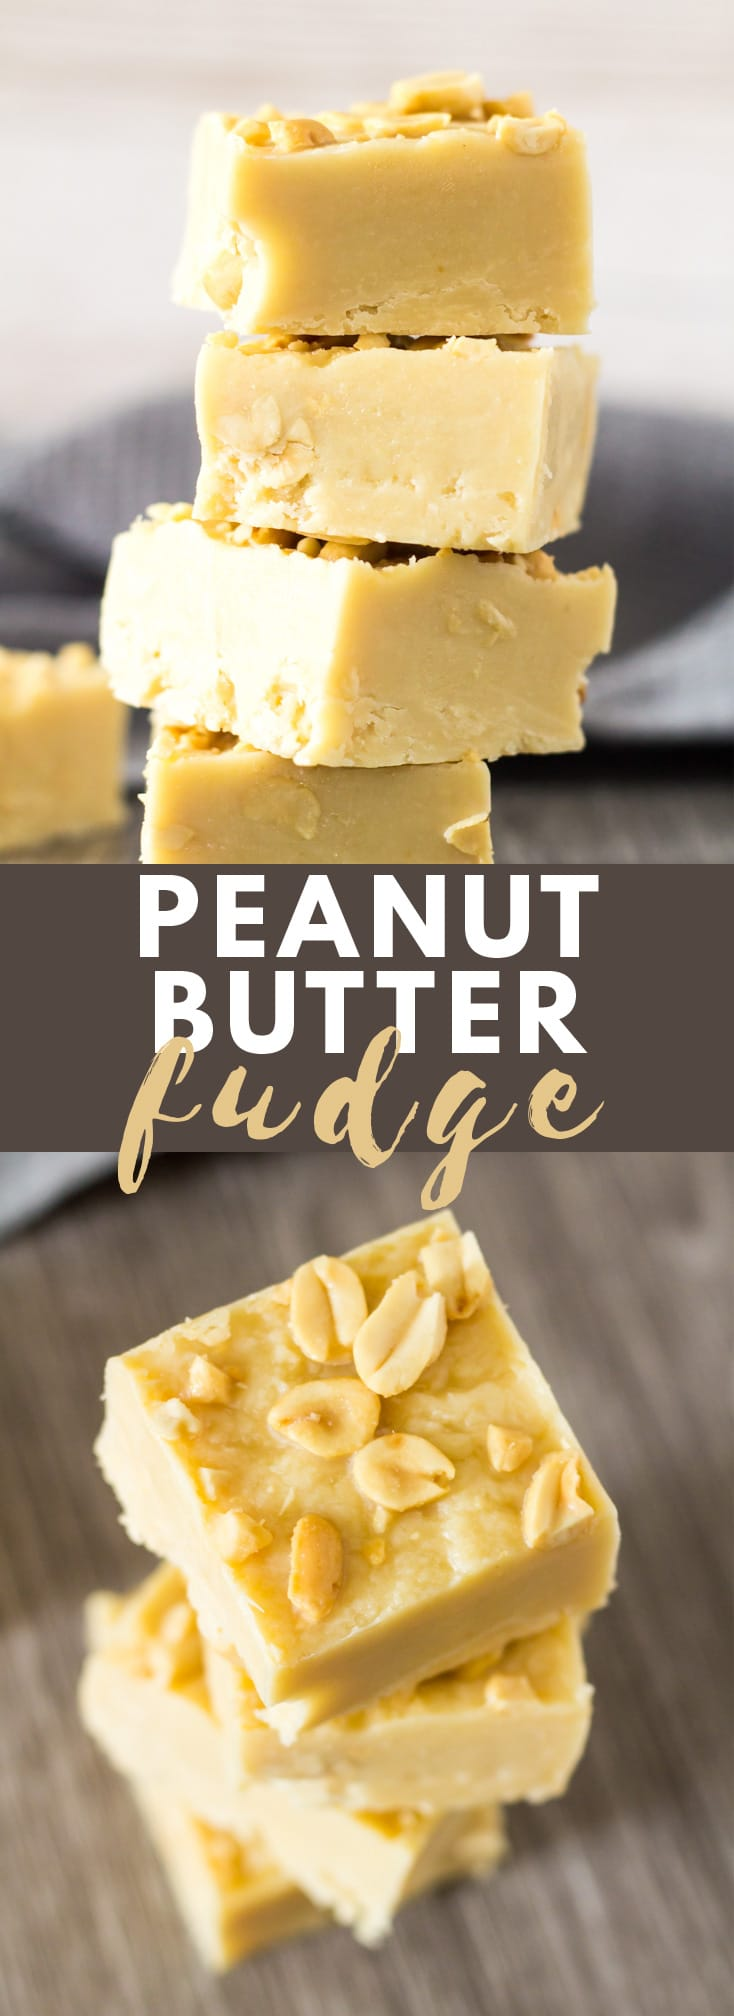 Peanut Butter Fudge - Deliciously creamy white chocolate fudge that is loaded with peanut butter flavour, and peanuts for added crunch. Only 5 simple ingredients! #whitechocolate #peanutbutter #fudge #fudgerecipes #recipe